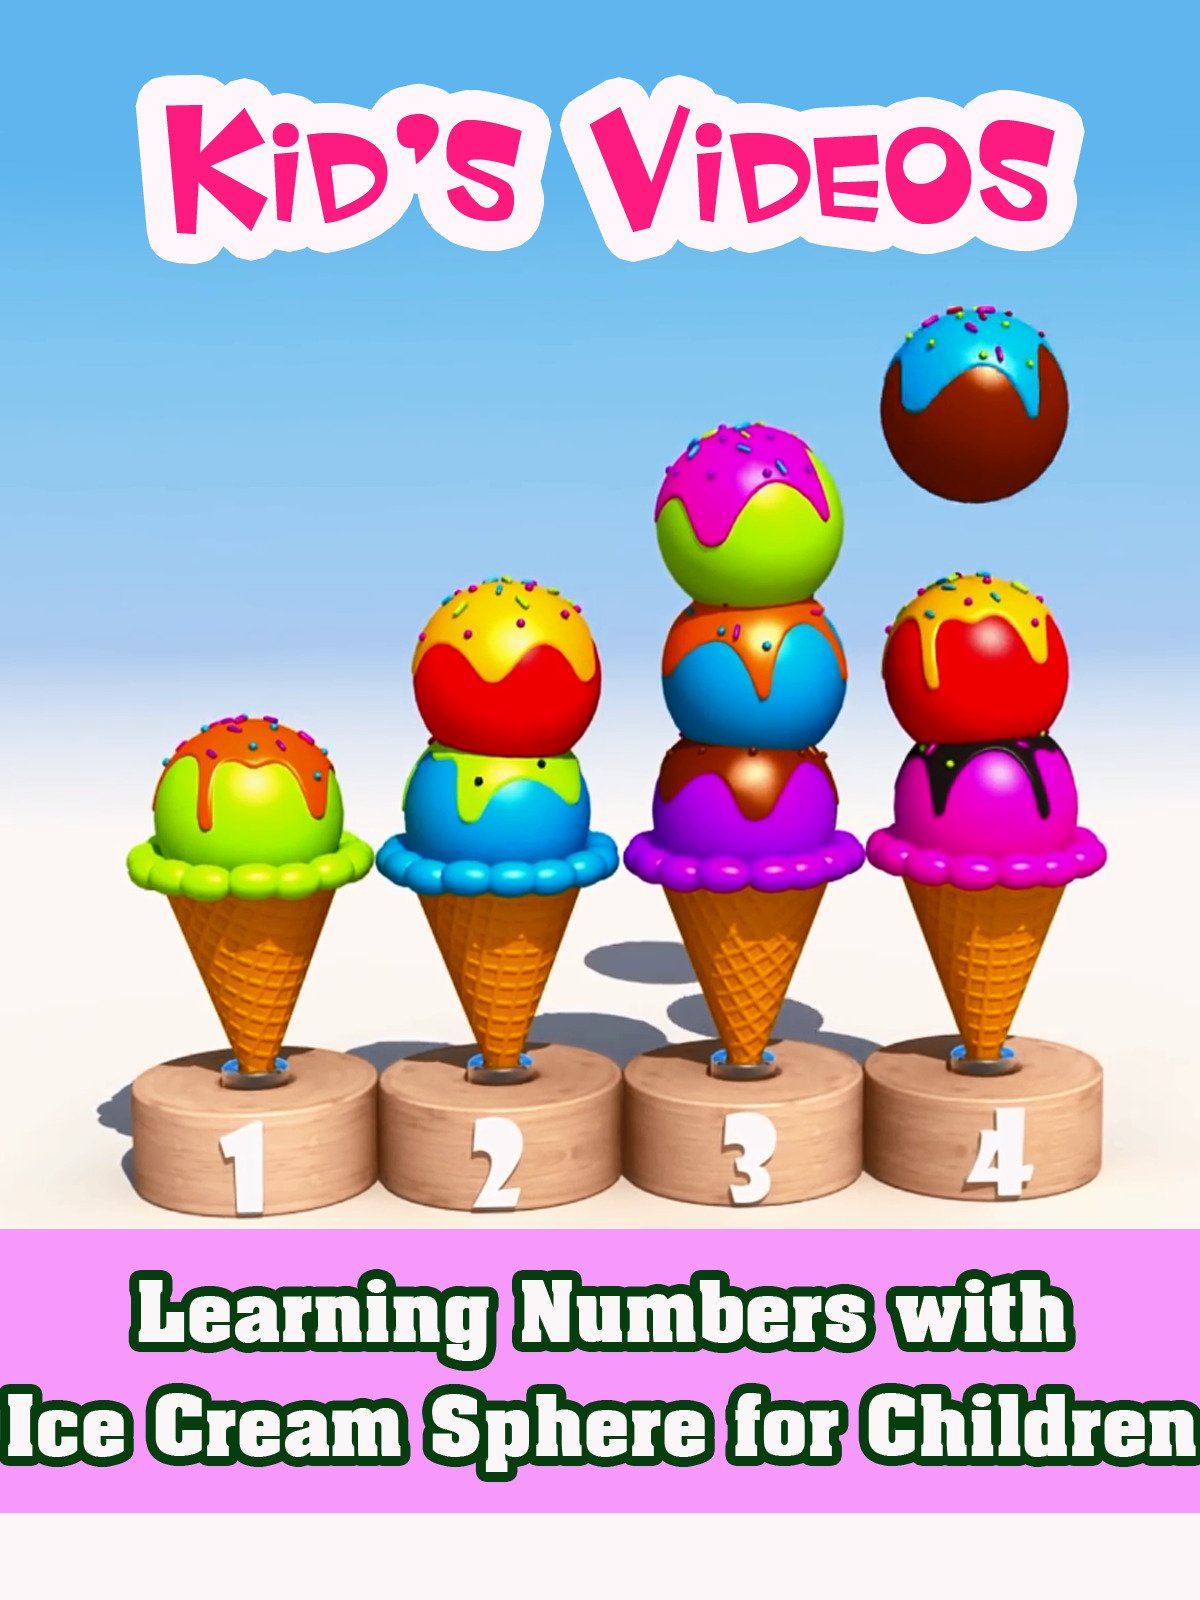 Learning Numbers with Ice Cream Sphere for Children